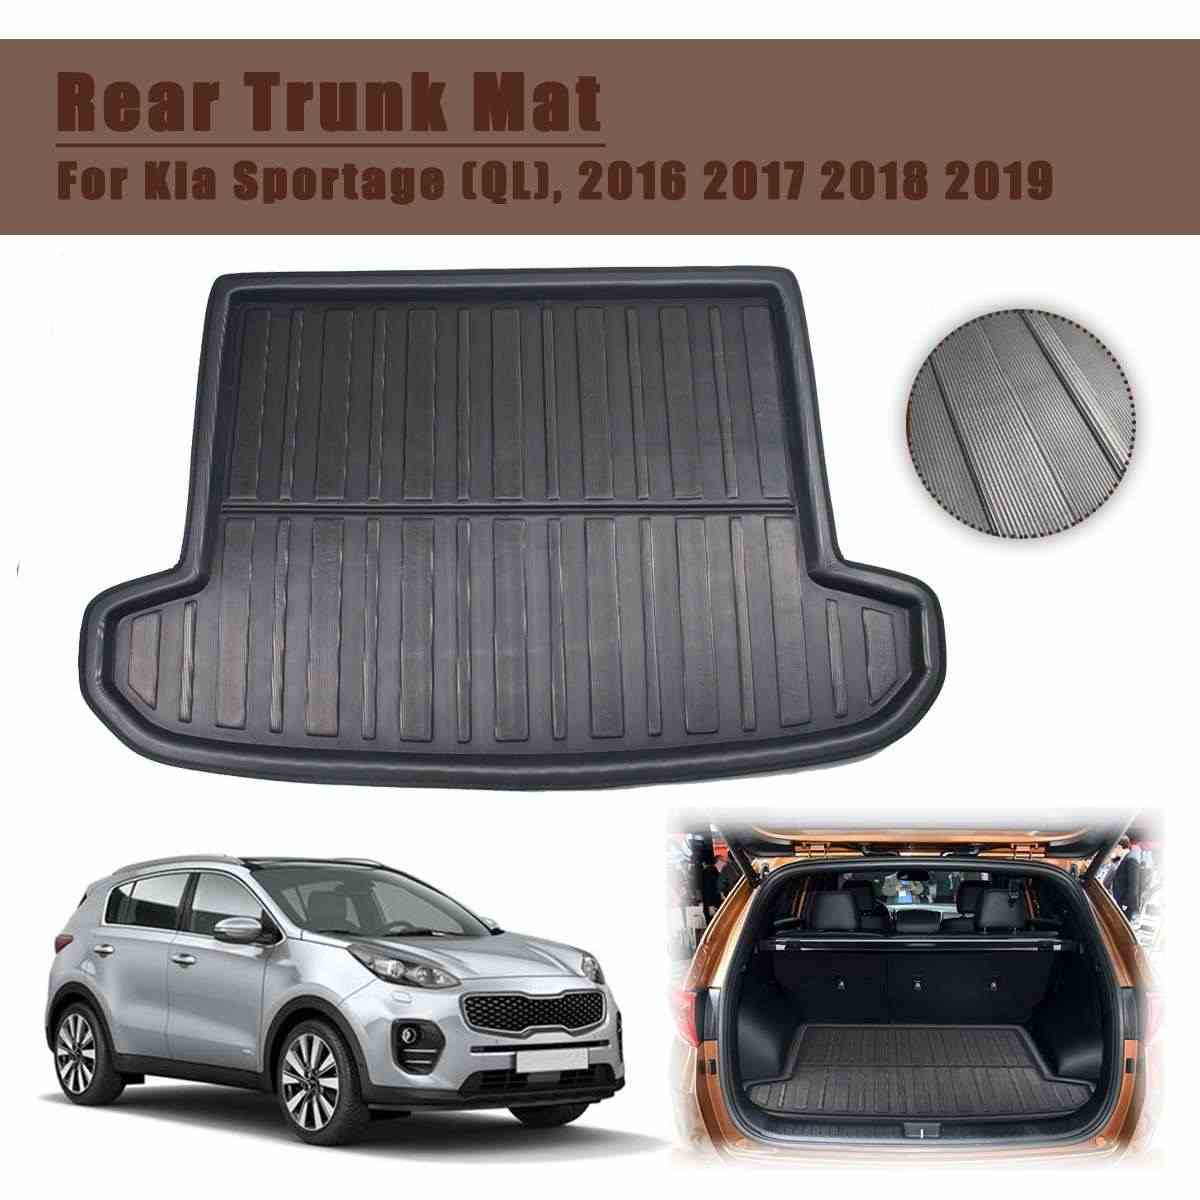 Car Cargo Liner Boot Tray Rear Trunk Cover Matt Mat Floor Carpet Kick Pad For Kia Sportage QL 2016 2017 2018 2019